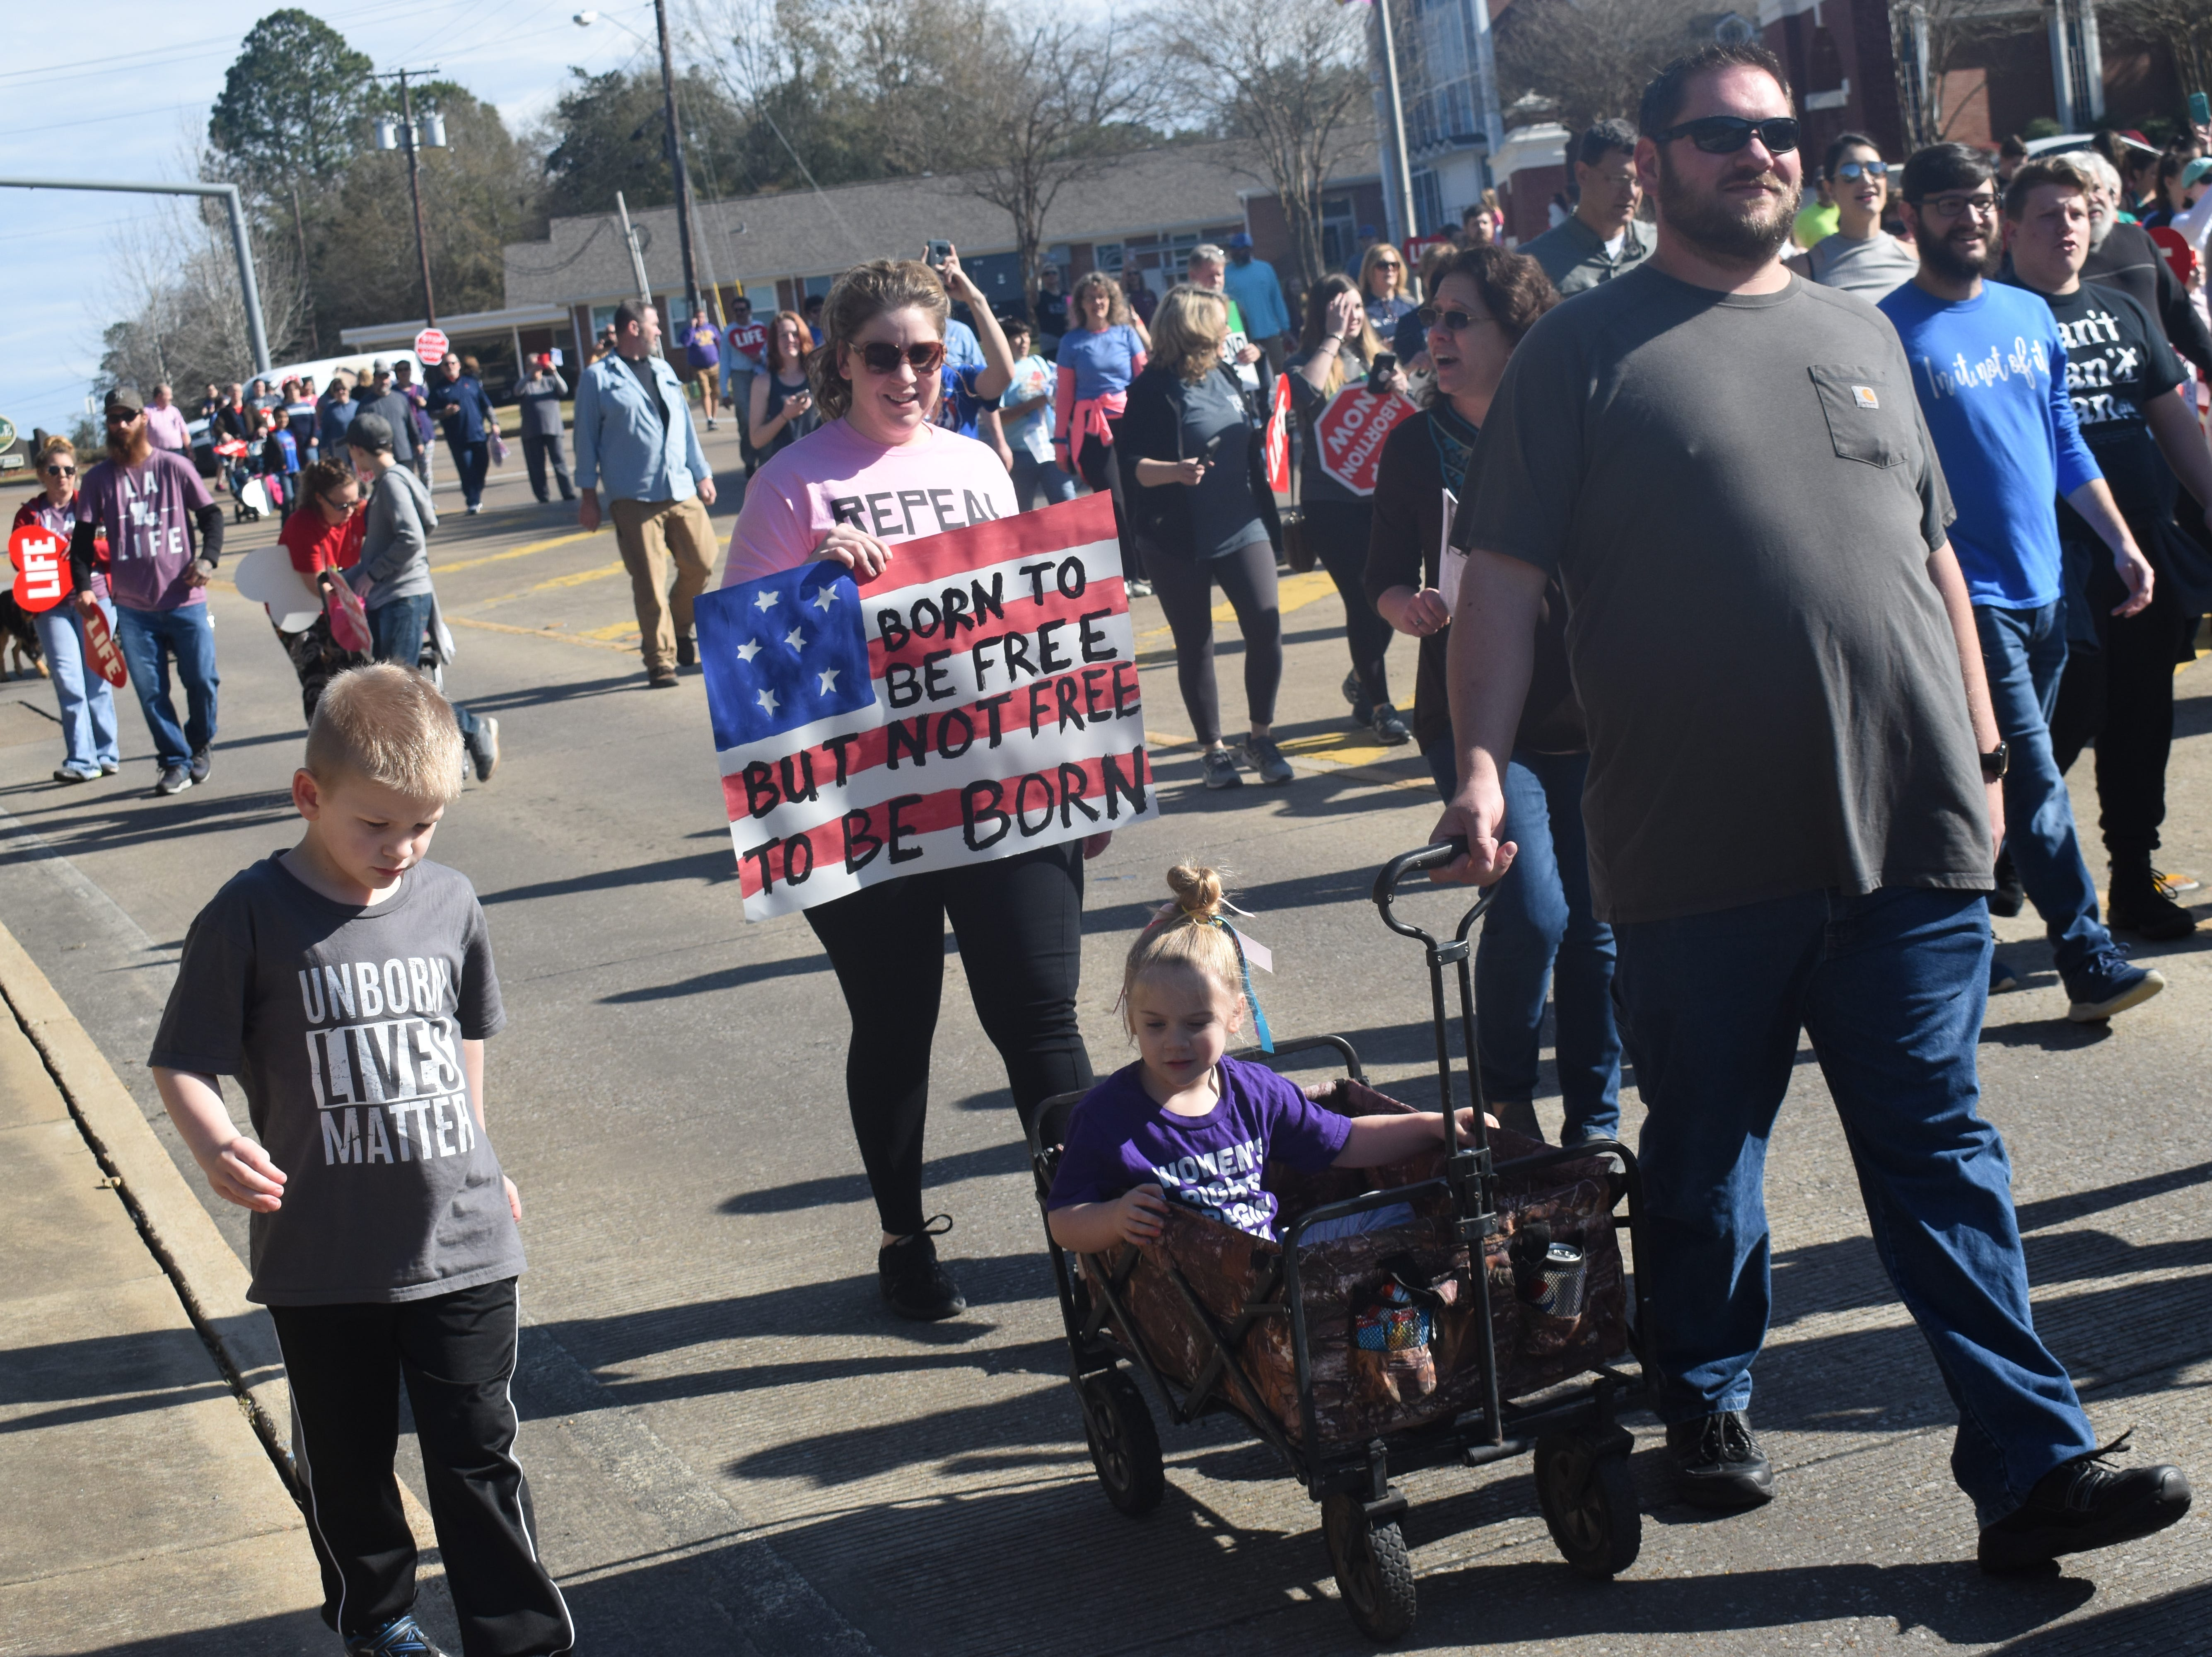 Health care reform needed alongside pro-life, abortion changes